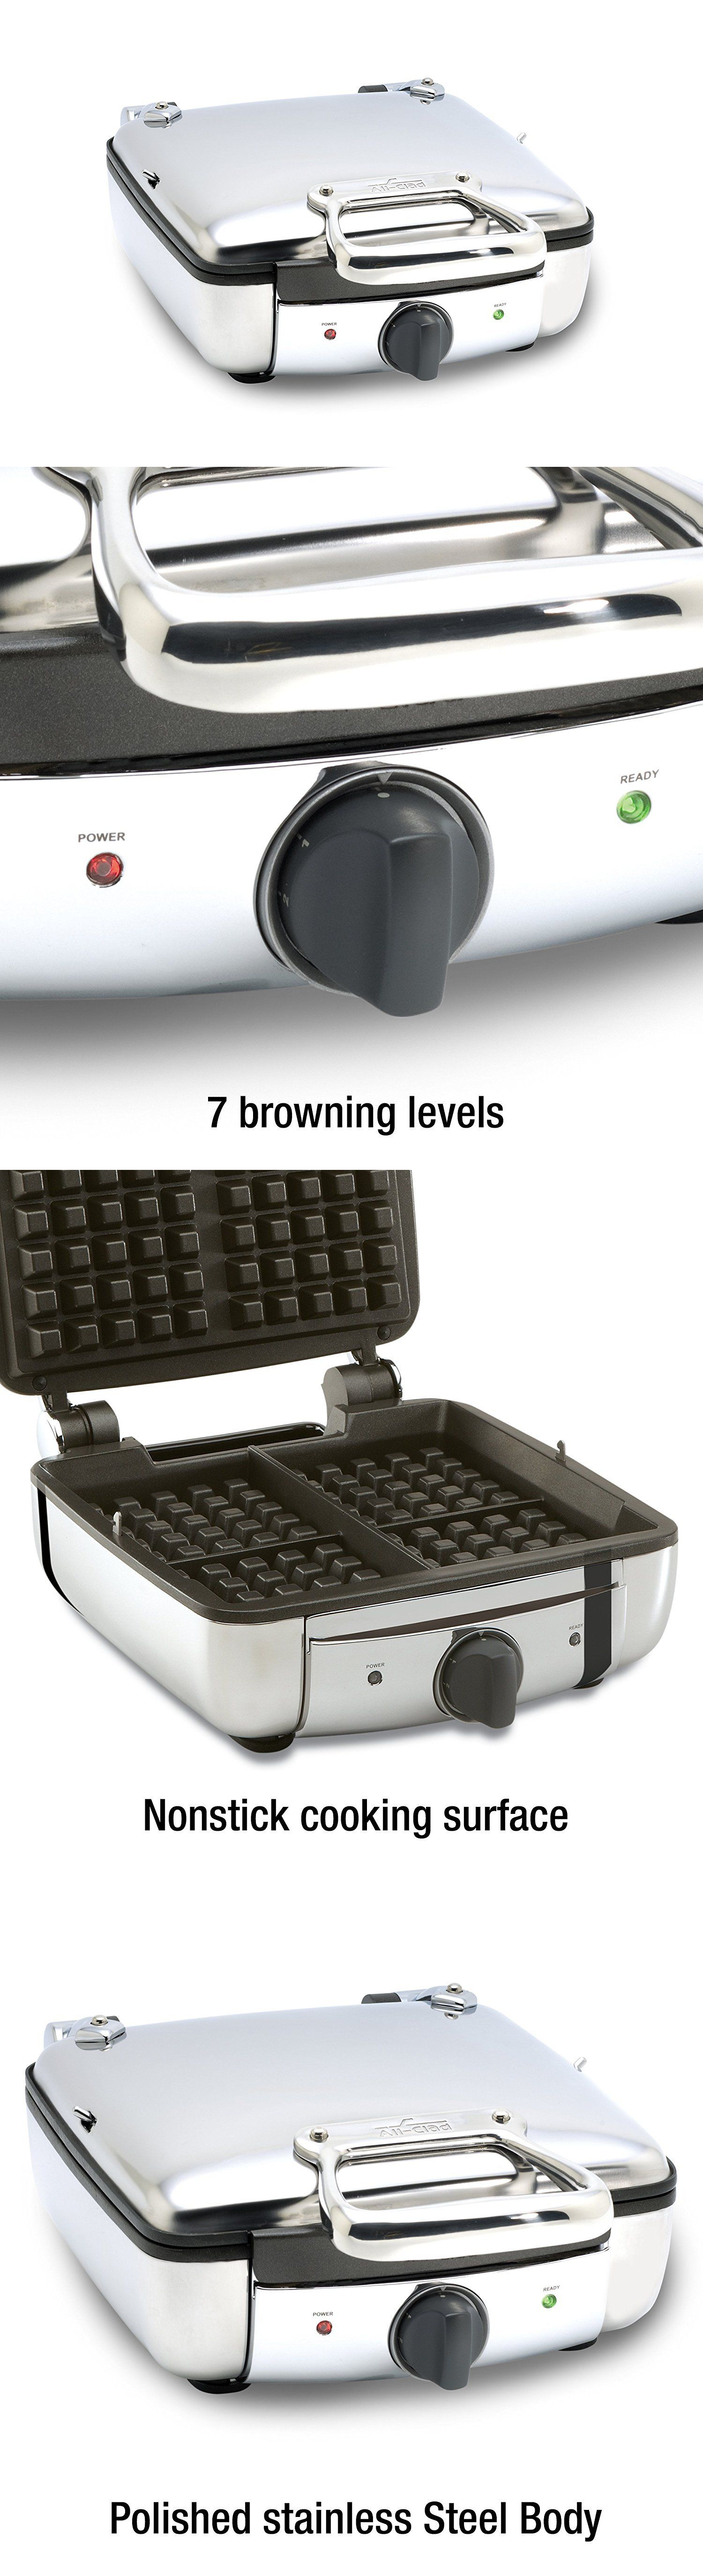 Waffle Irons All Clad 99011GT Stainless Steel Belgian Maker Browning Settings